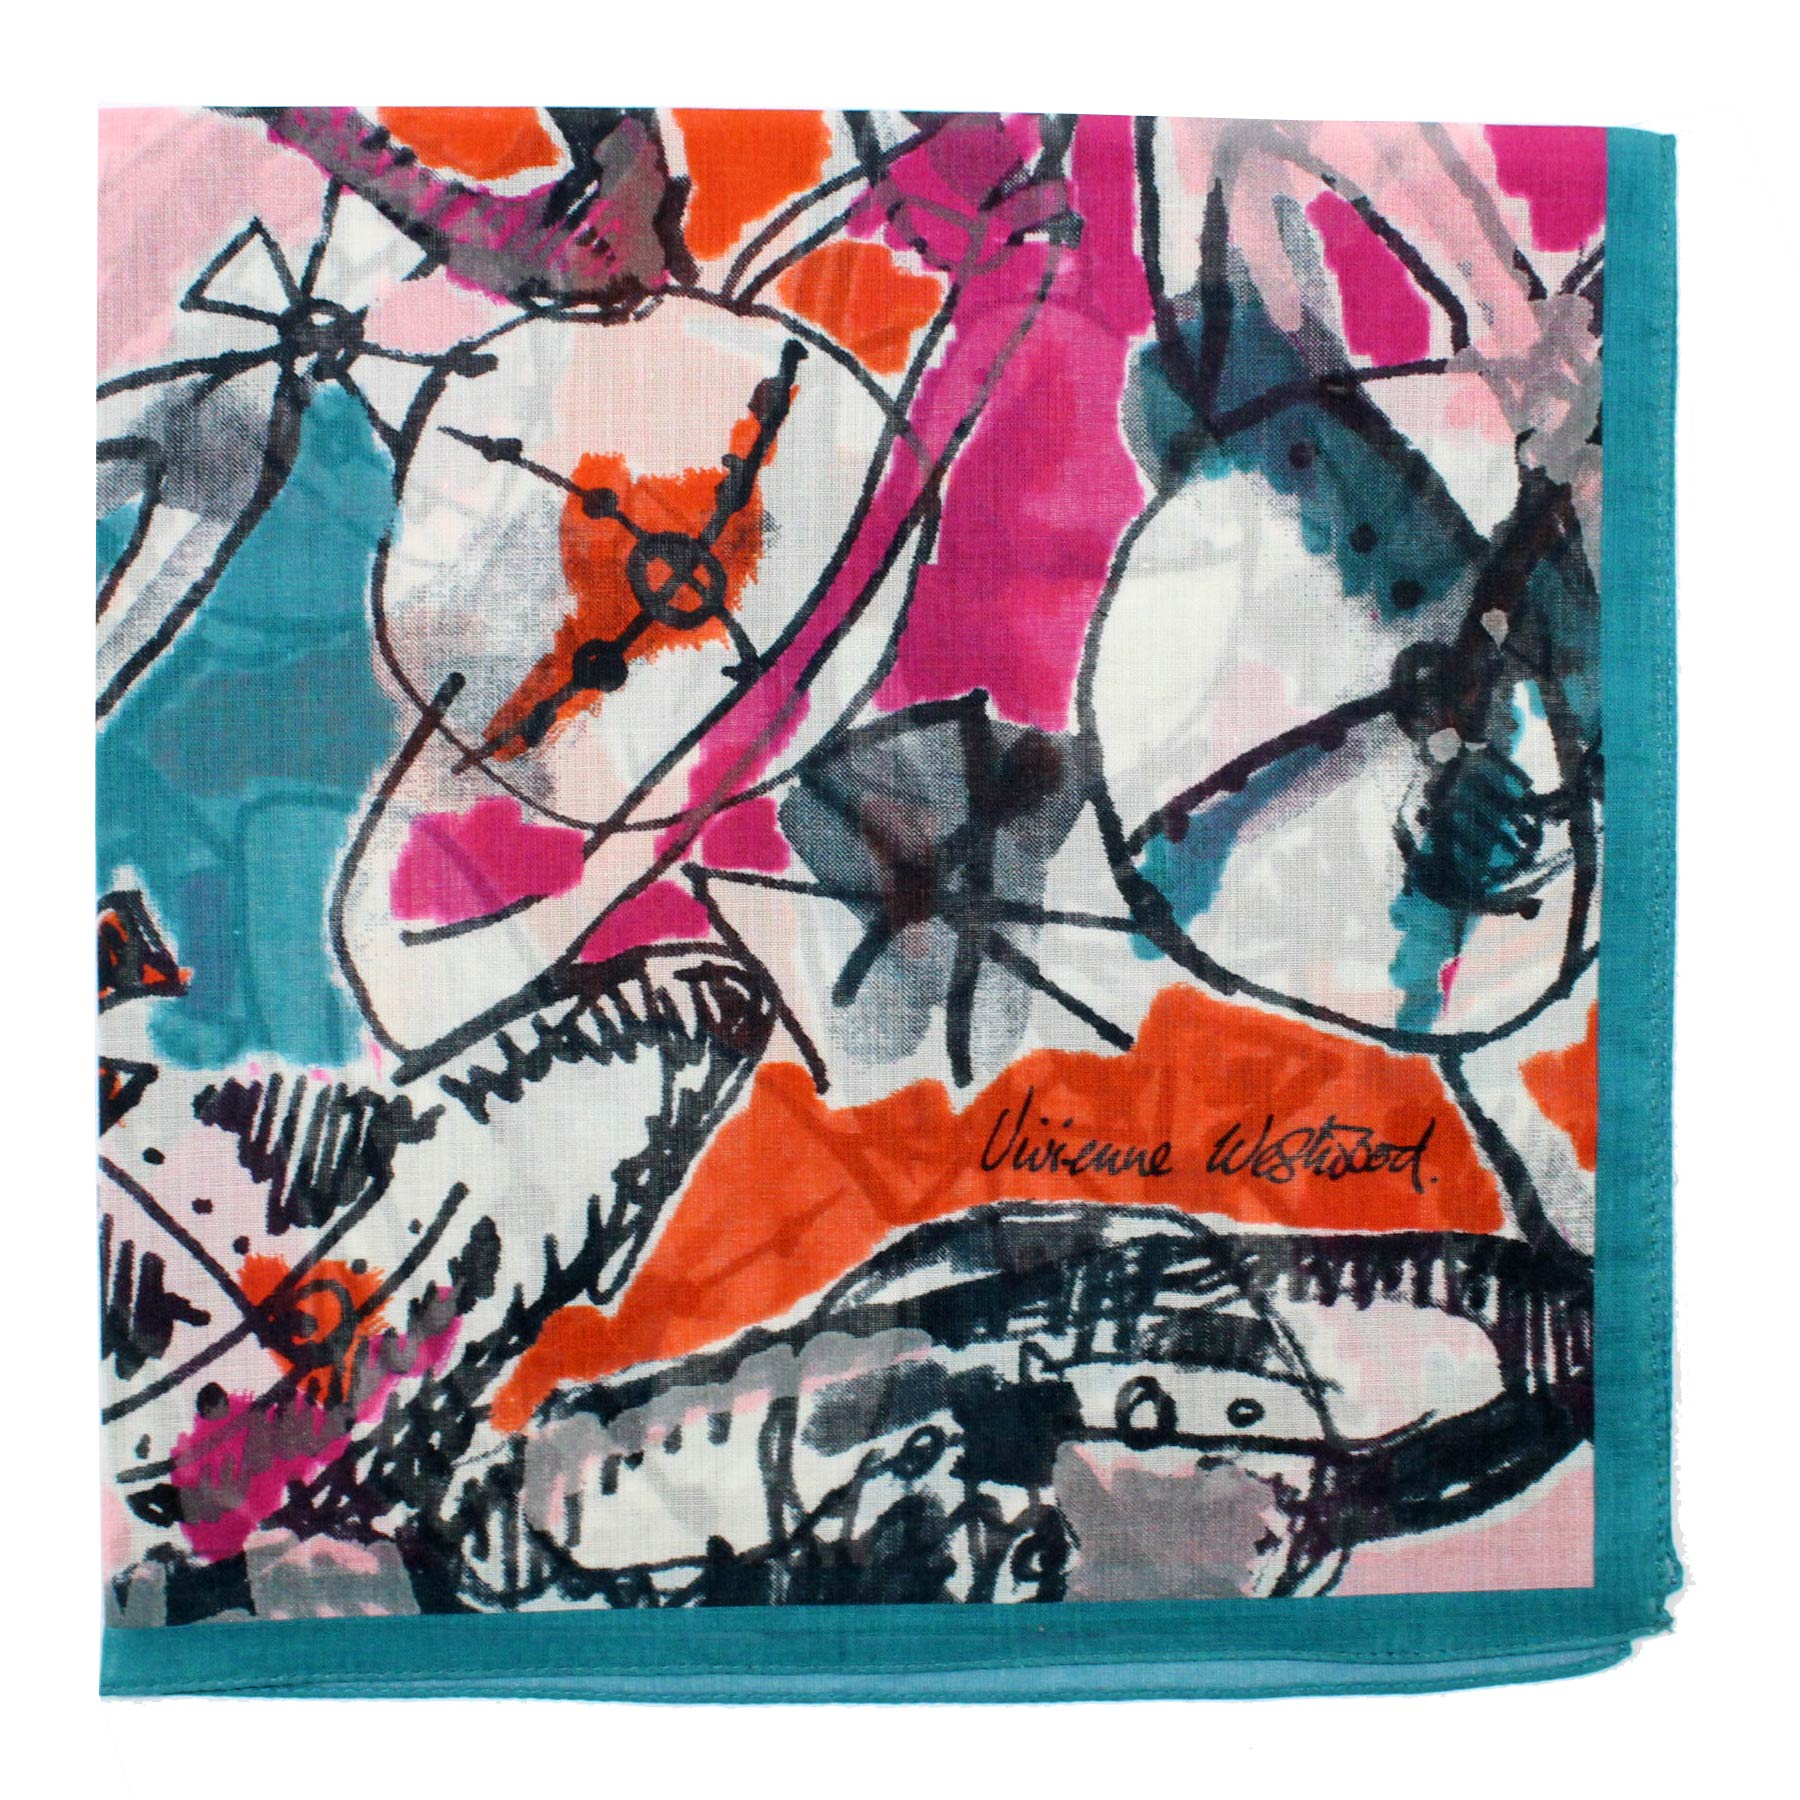 Vivienne Westwood Small Scarf Teal Pink - Cotton Scarf FINAL SALE